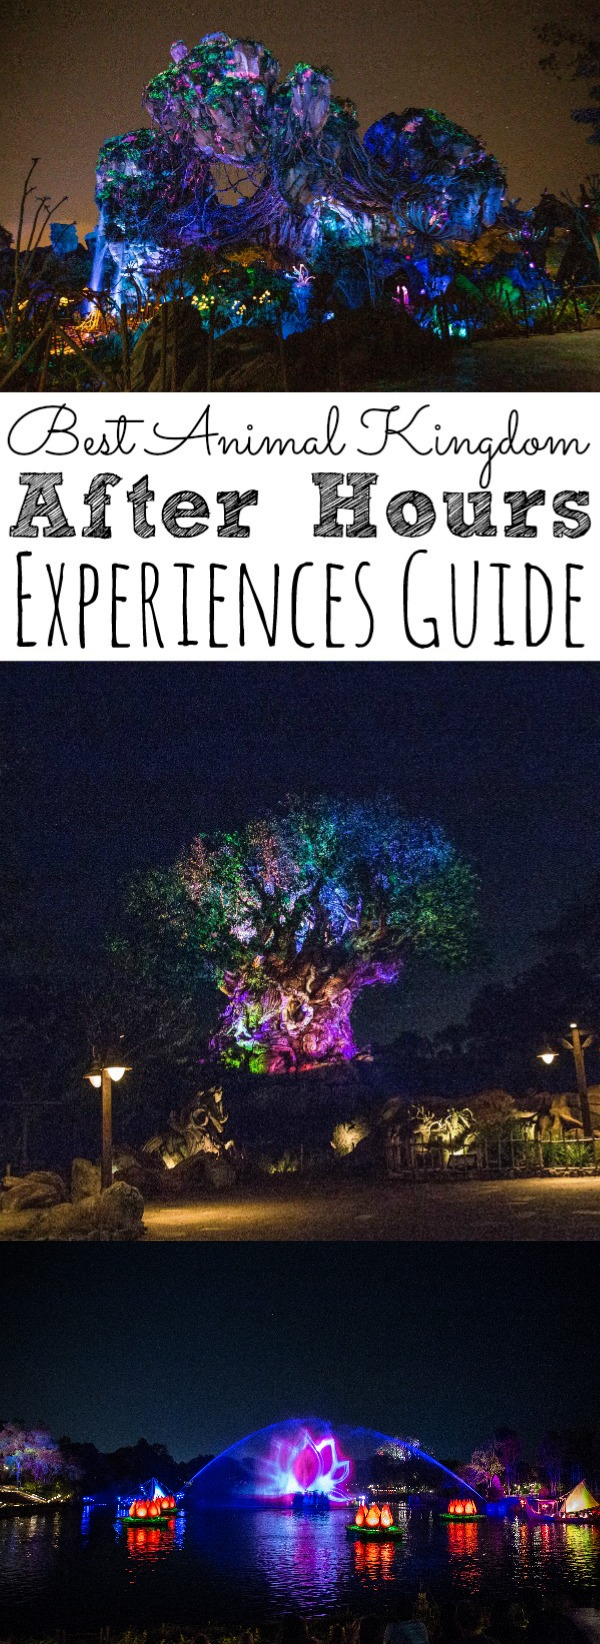 Best Animal Kingdom After Hours Experiences Guide